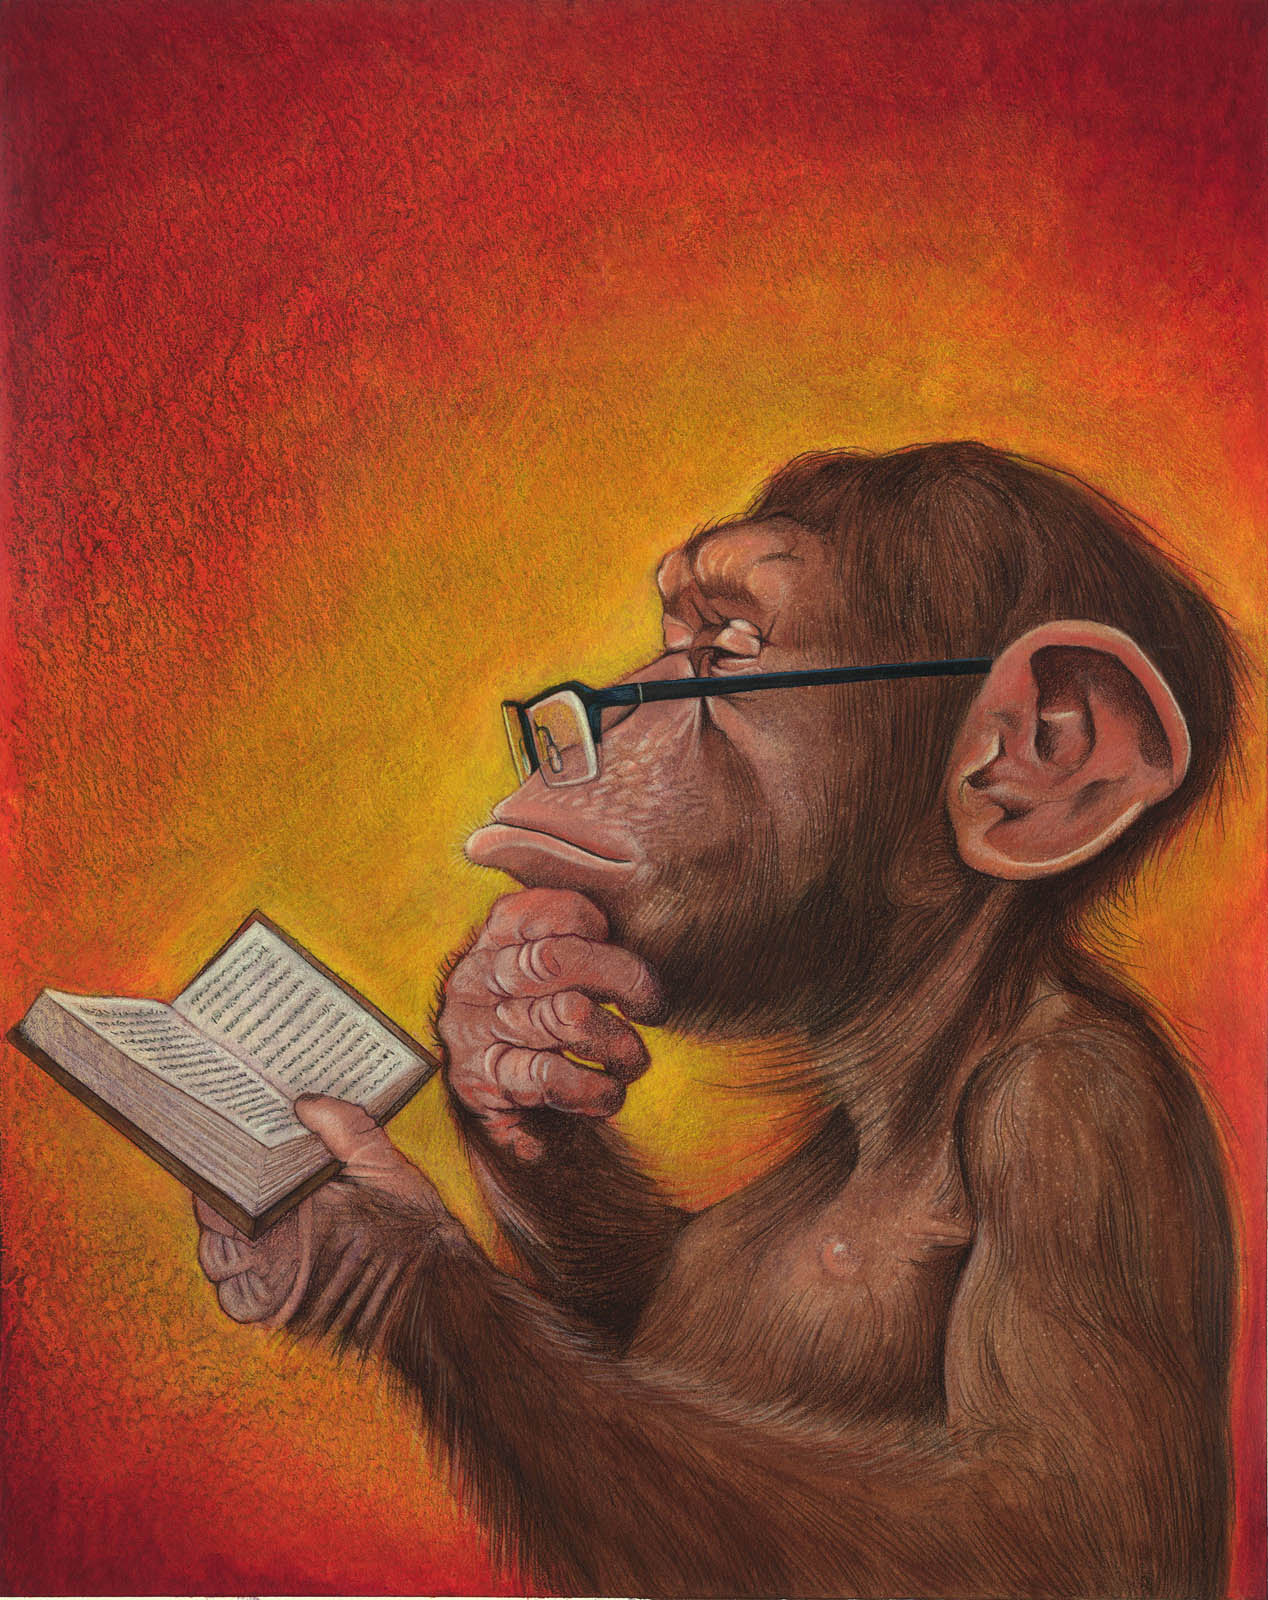 The book monkey business